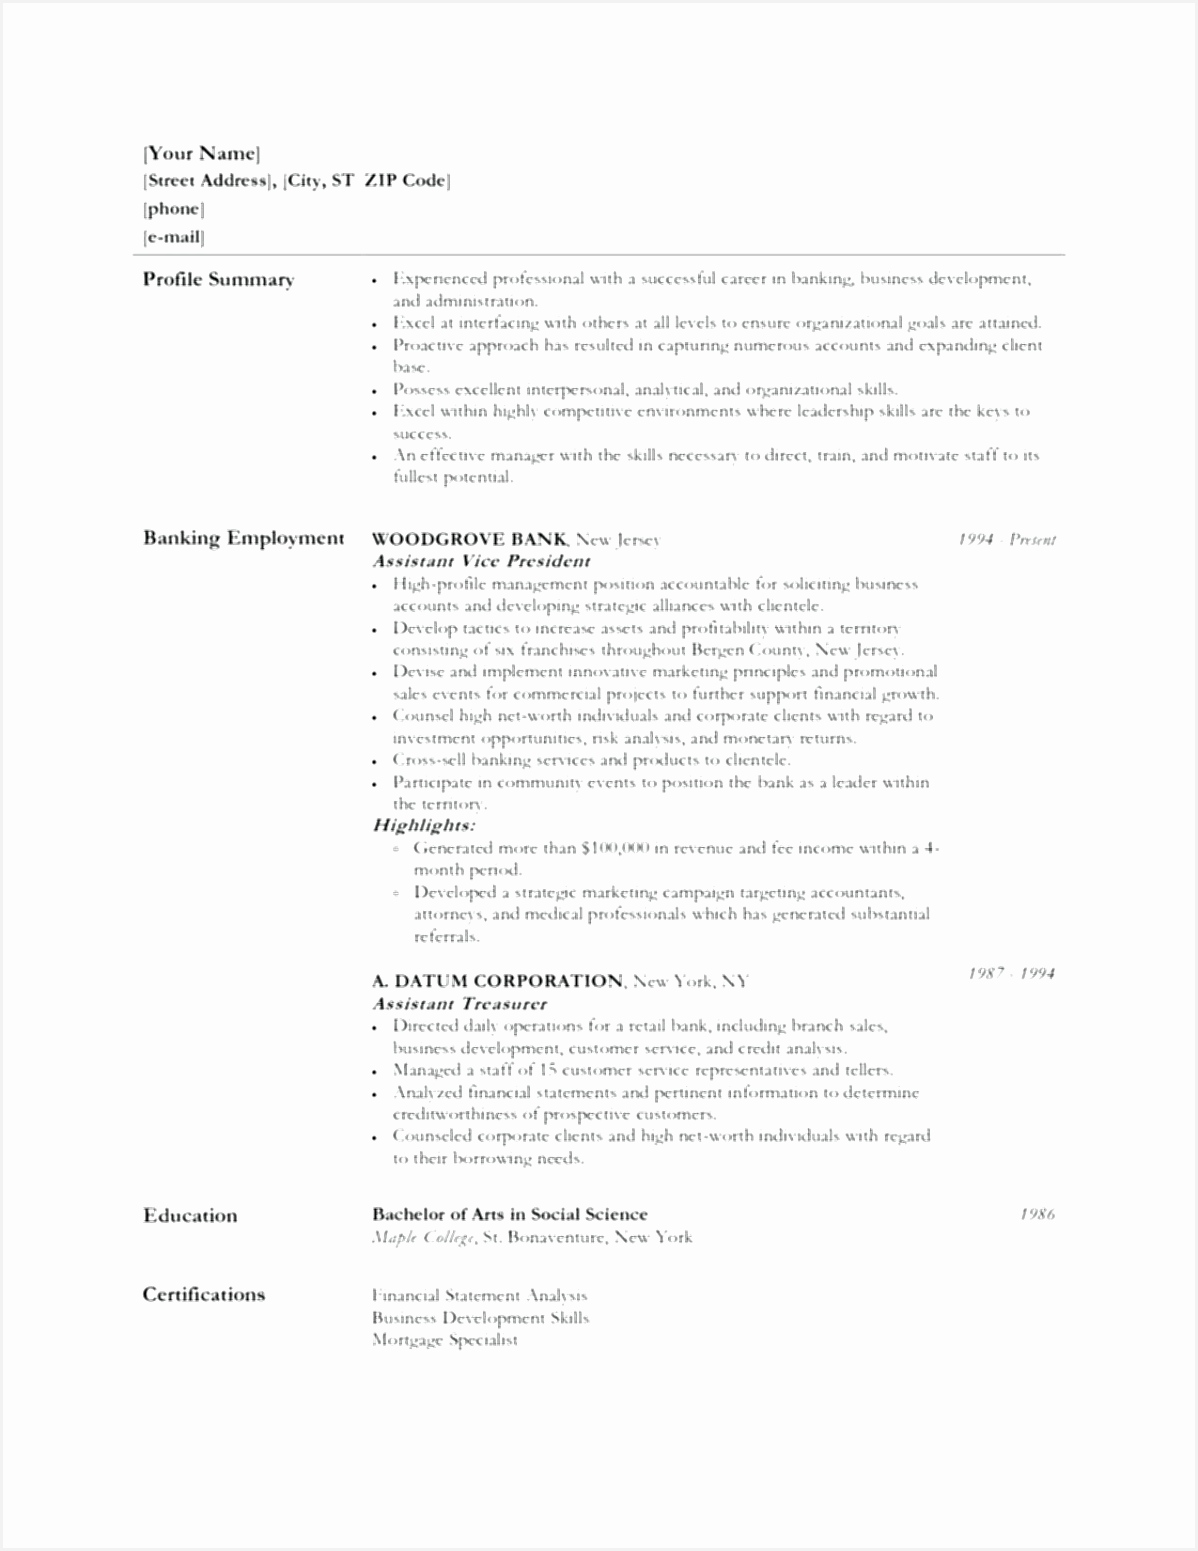 Customer Profile Template Excel Best Resume with Objective Skills Summary for Resume Examples Awesome 0d 15511198xrBft